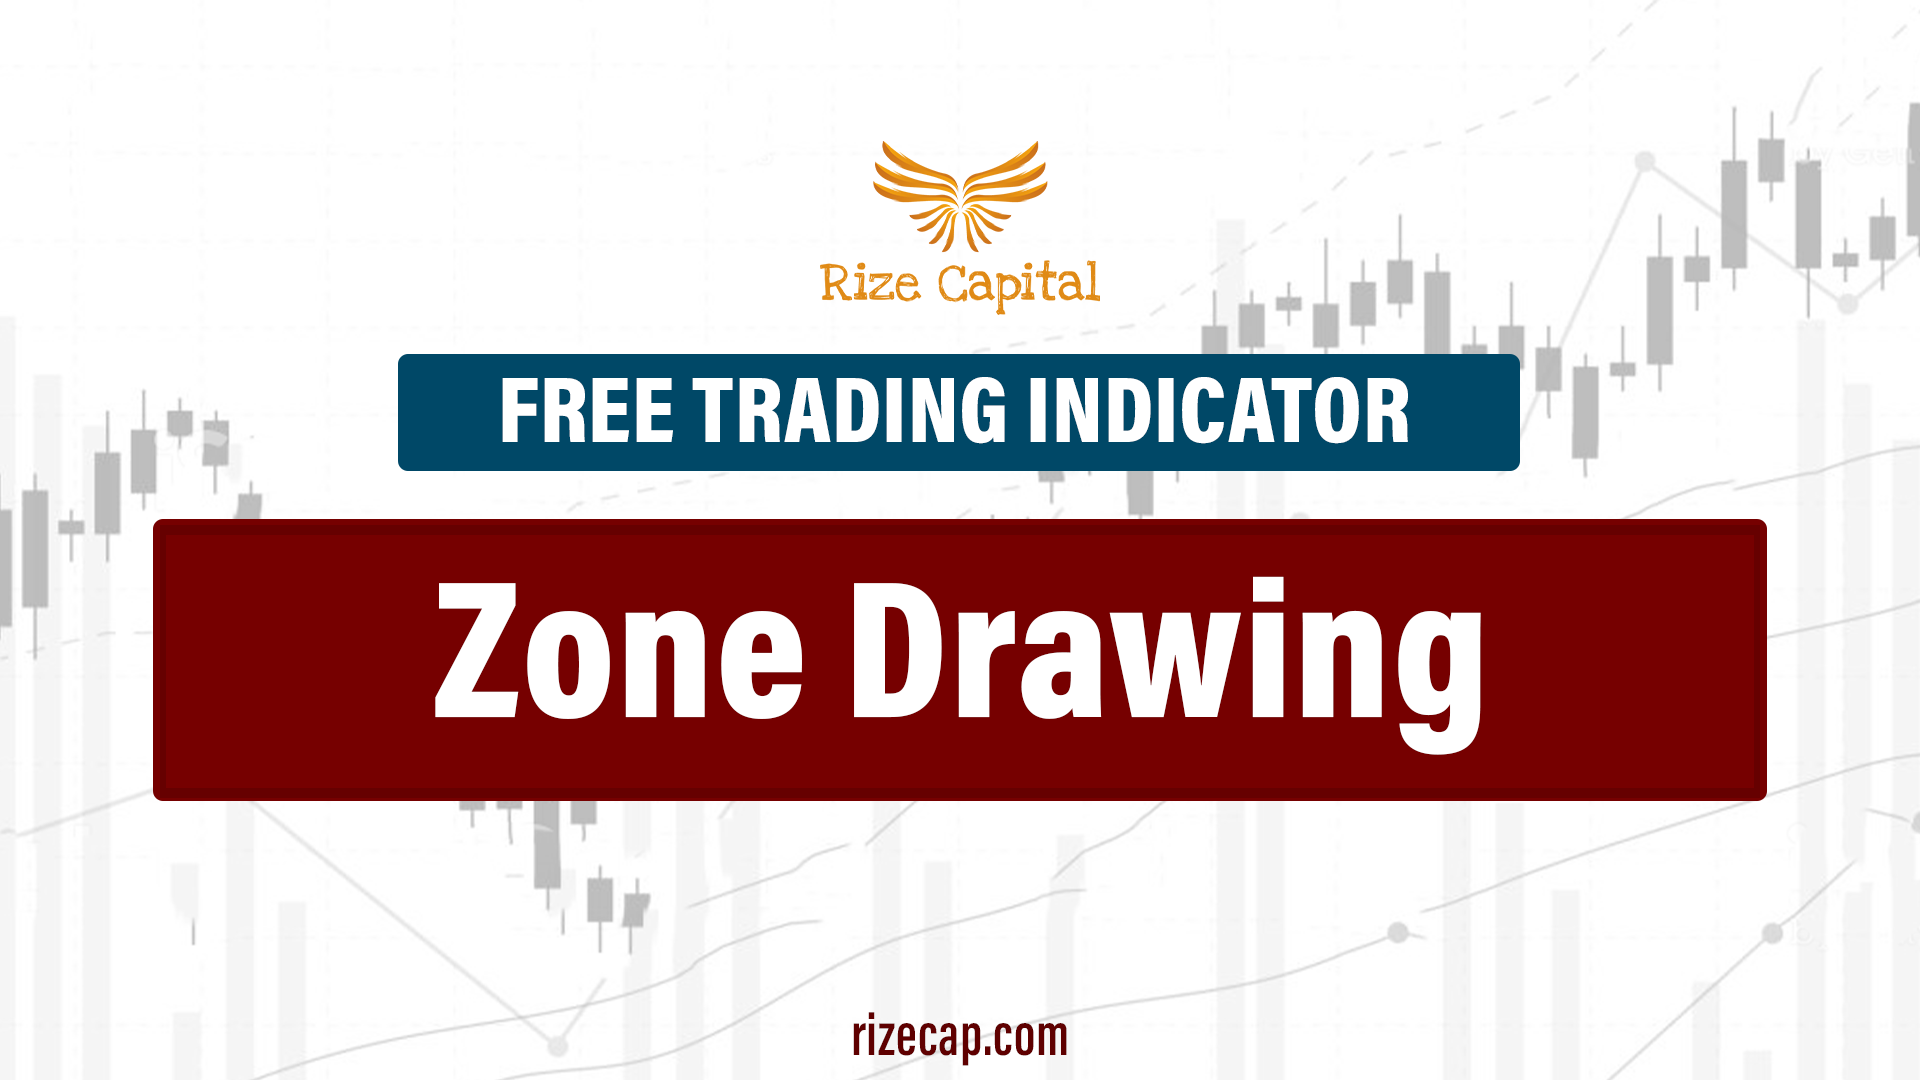 Zone Drawing Free indicator